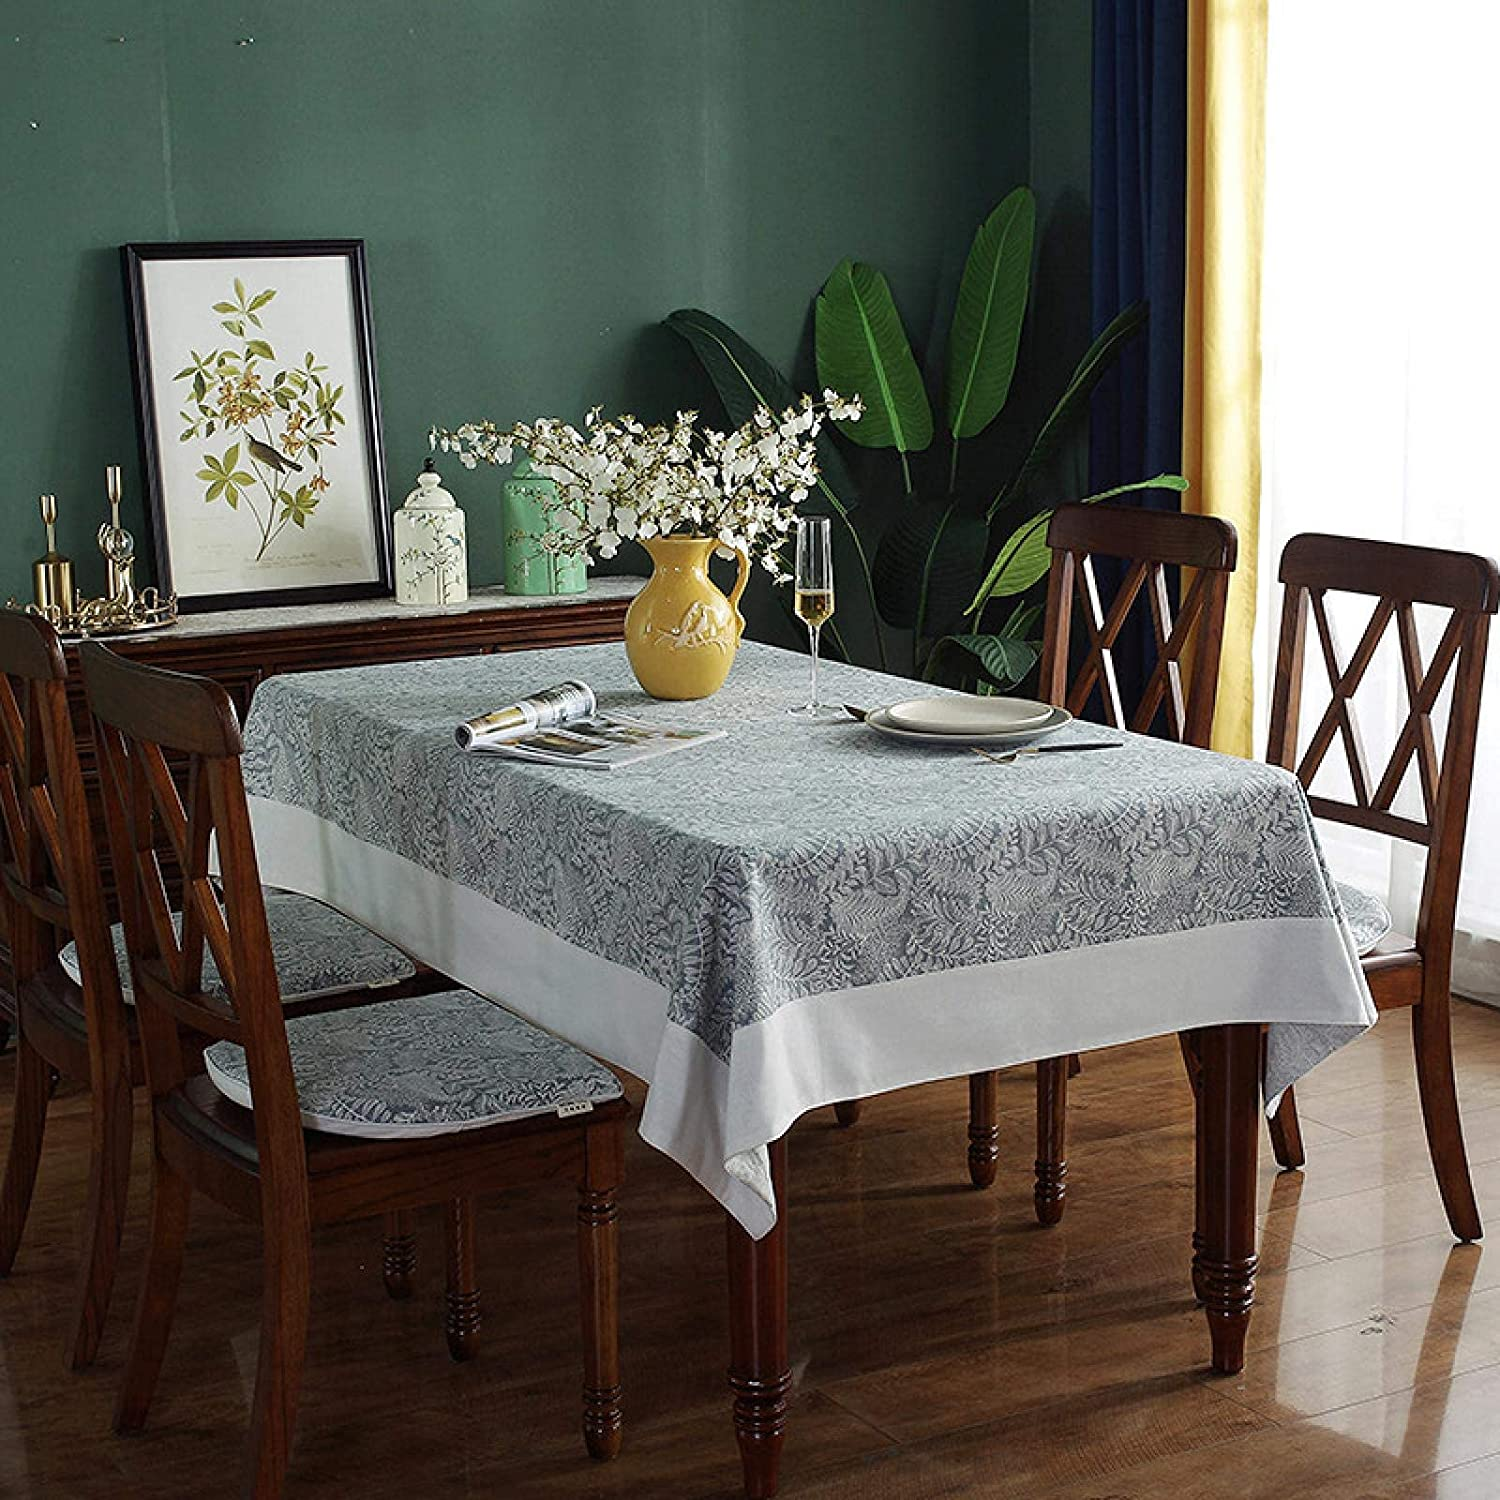 Gcxzb Tablecloths New product!! Table Cloth American Light Fashionable Gray C Retro